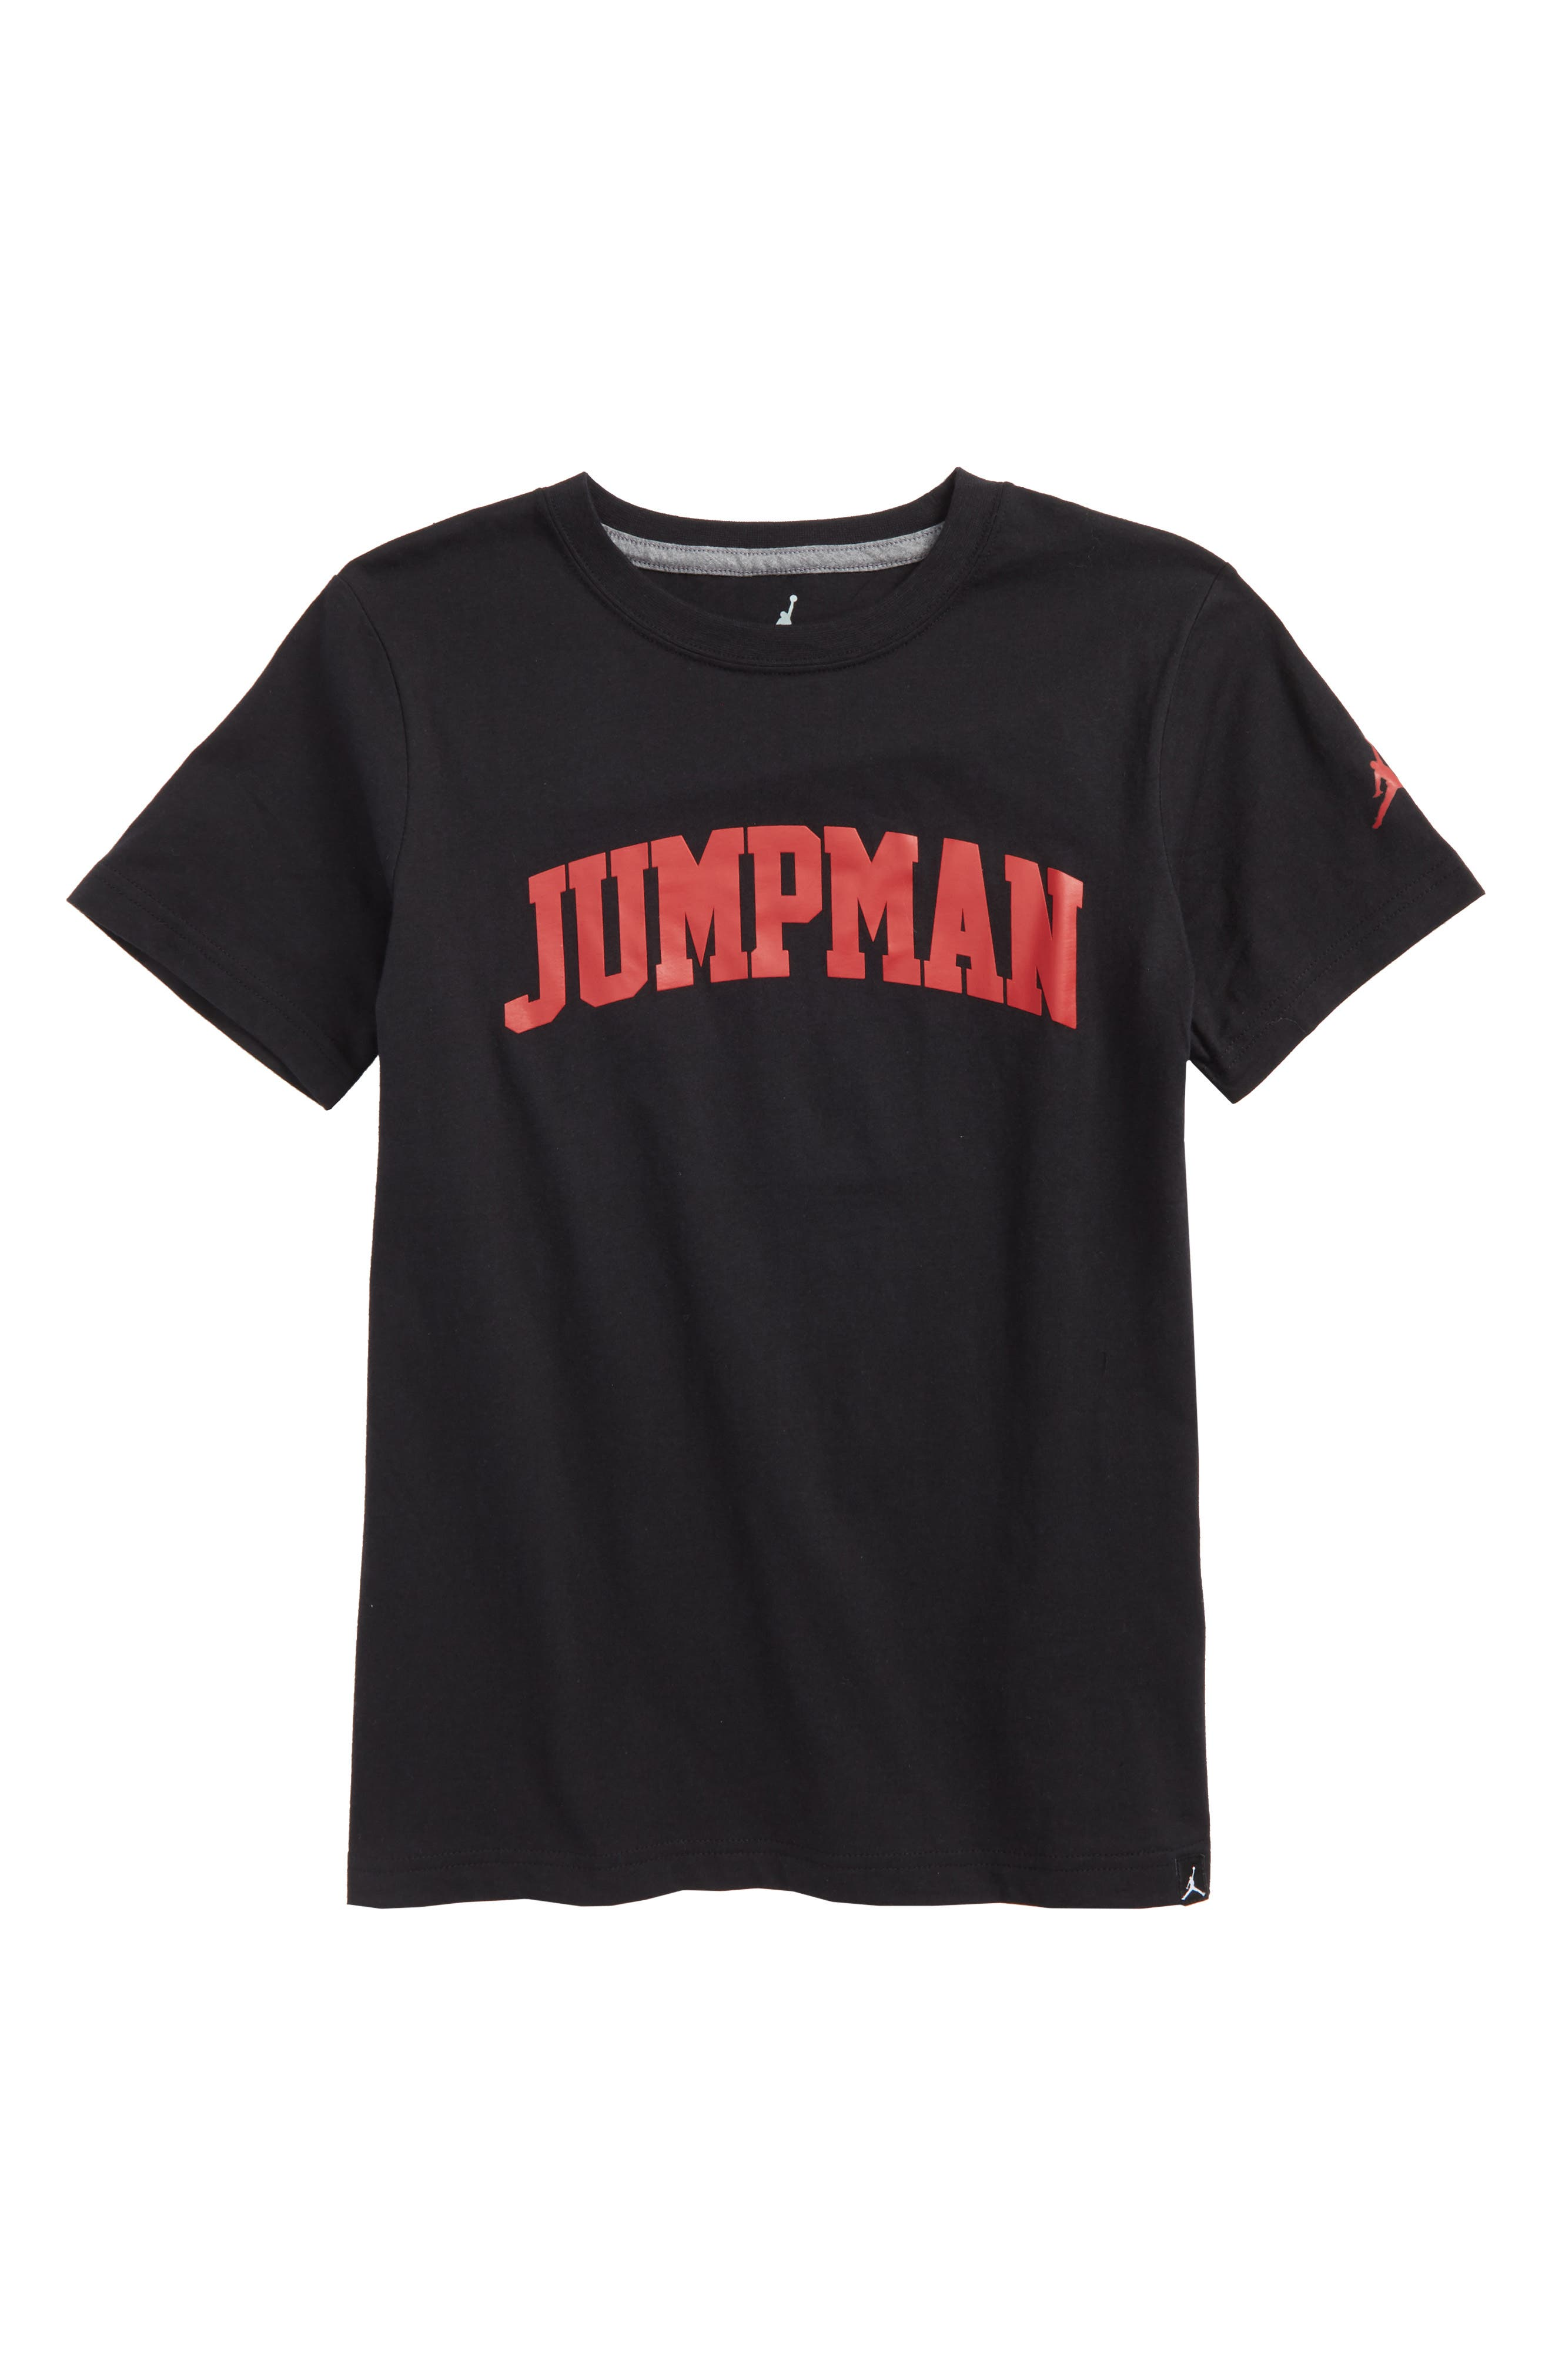 Jordan Brand Graphic T-Shirt,                             Main thumbnail 1, color,                             004